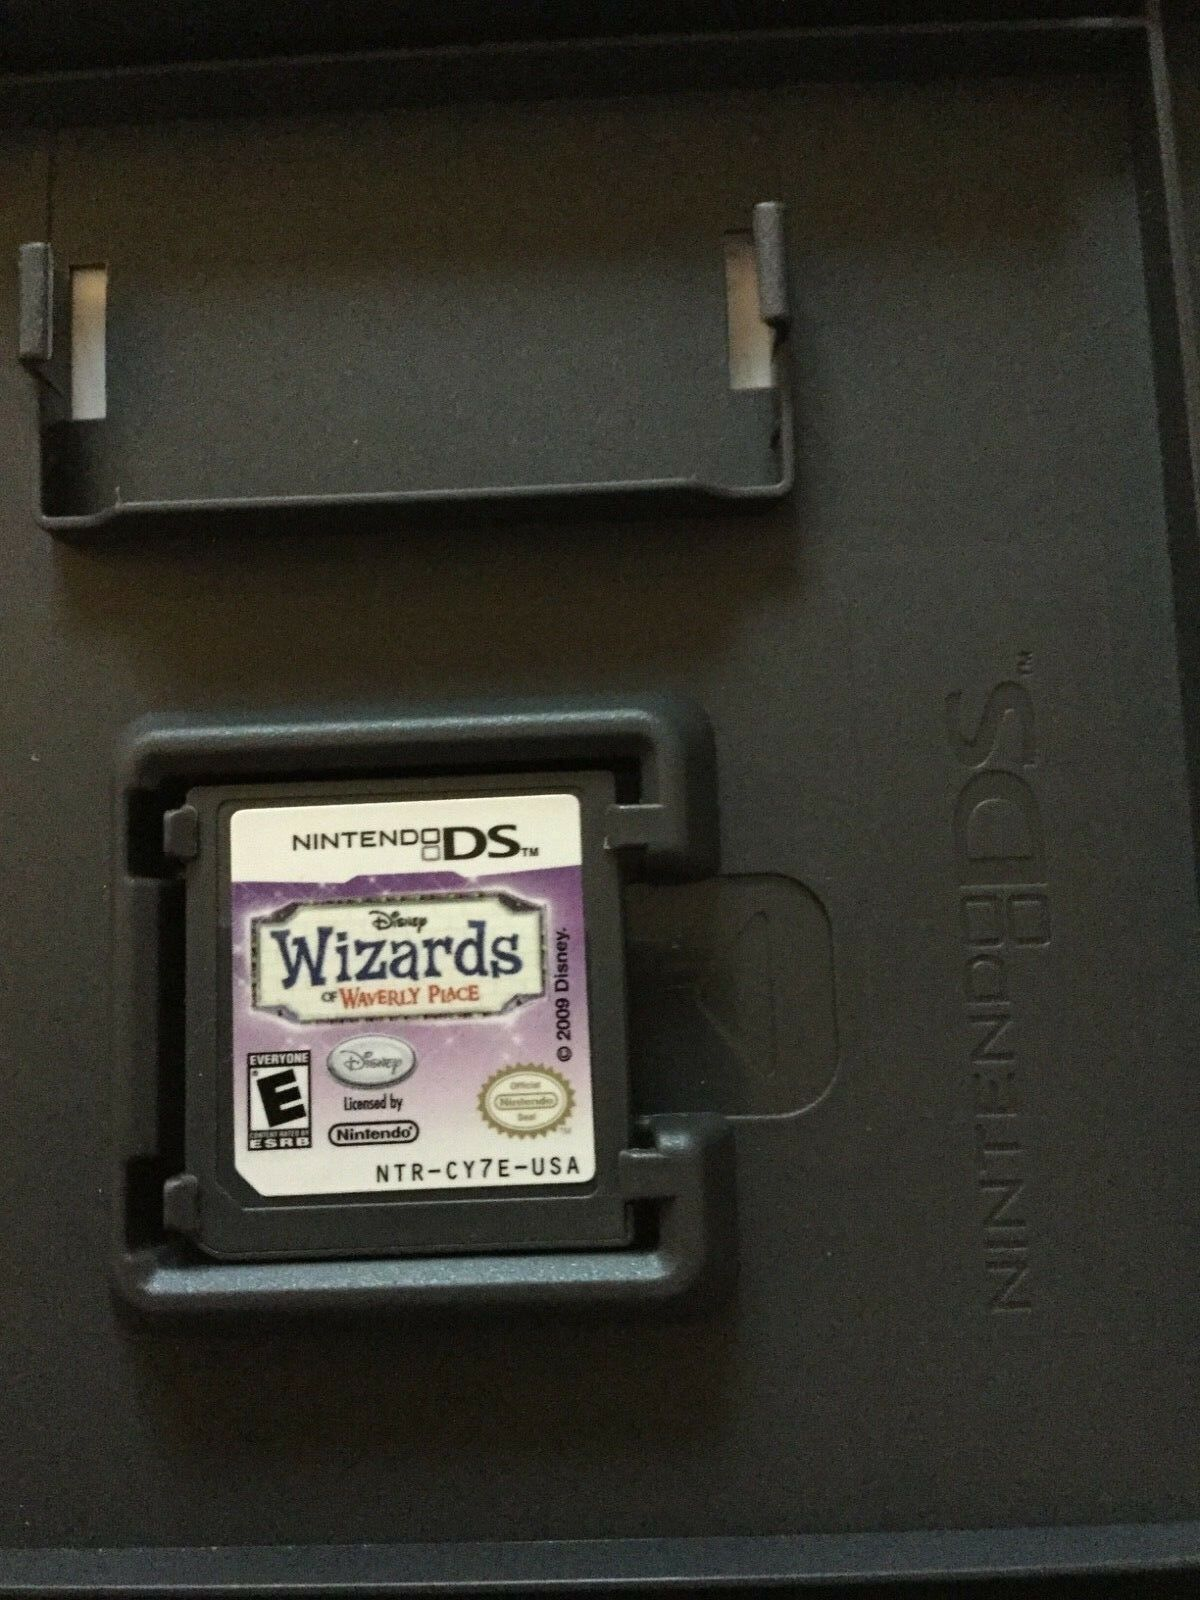 Preowned Wizards of Waverly Place - Nintendo DS